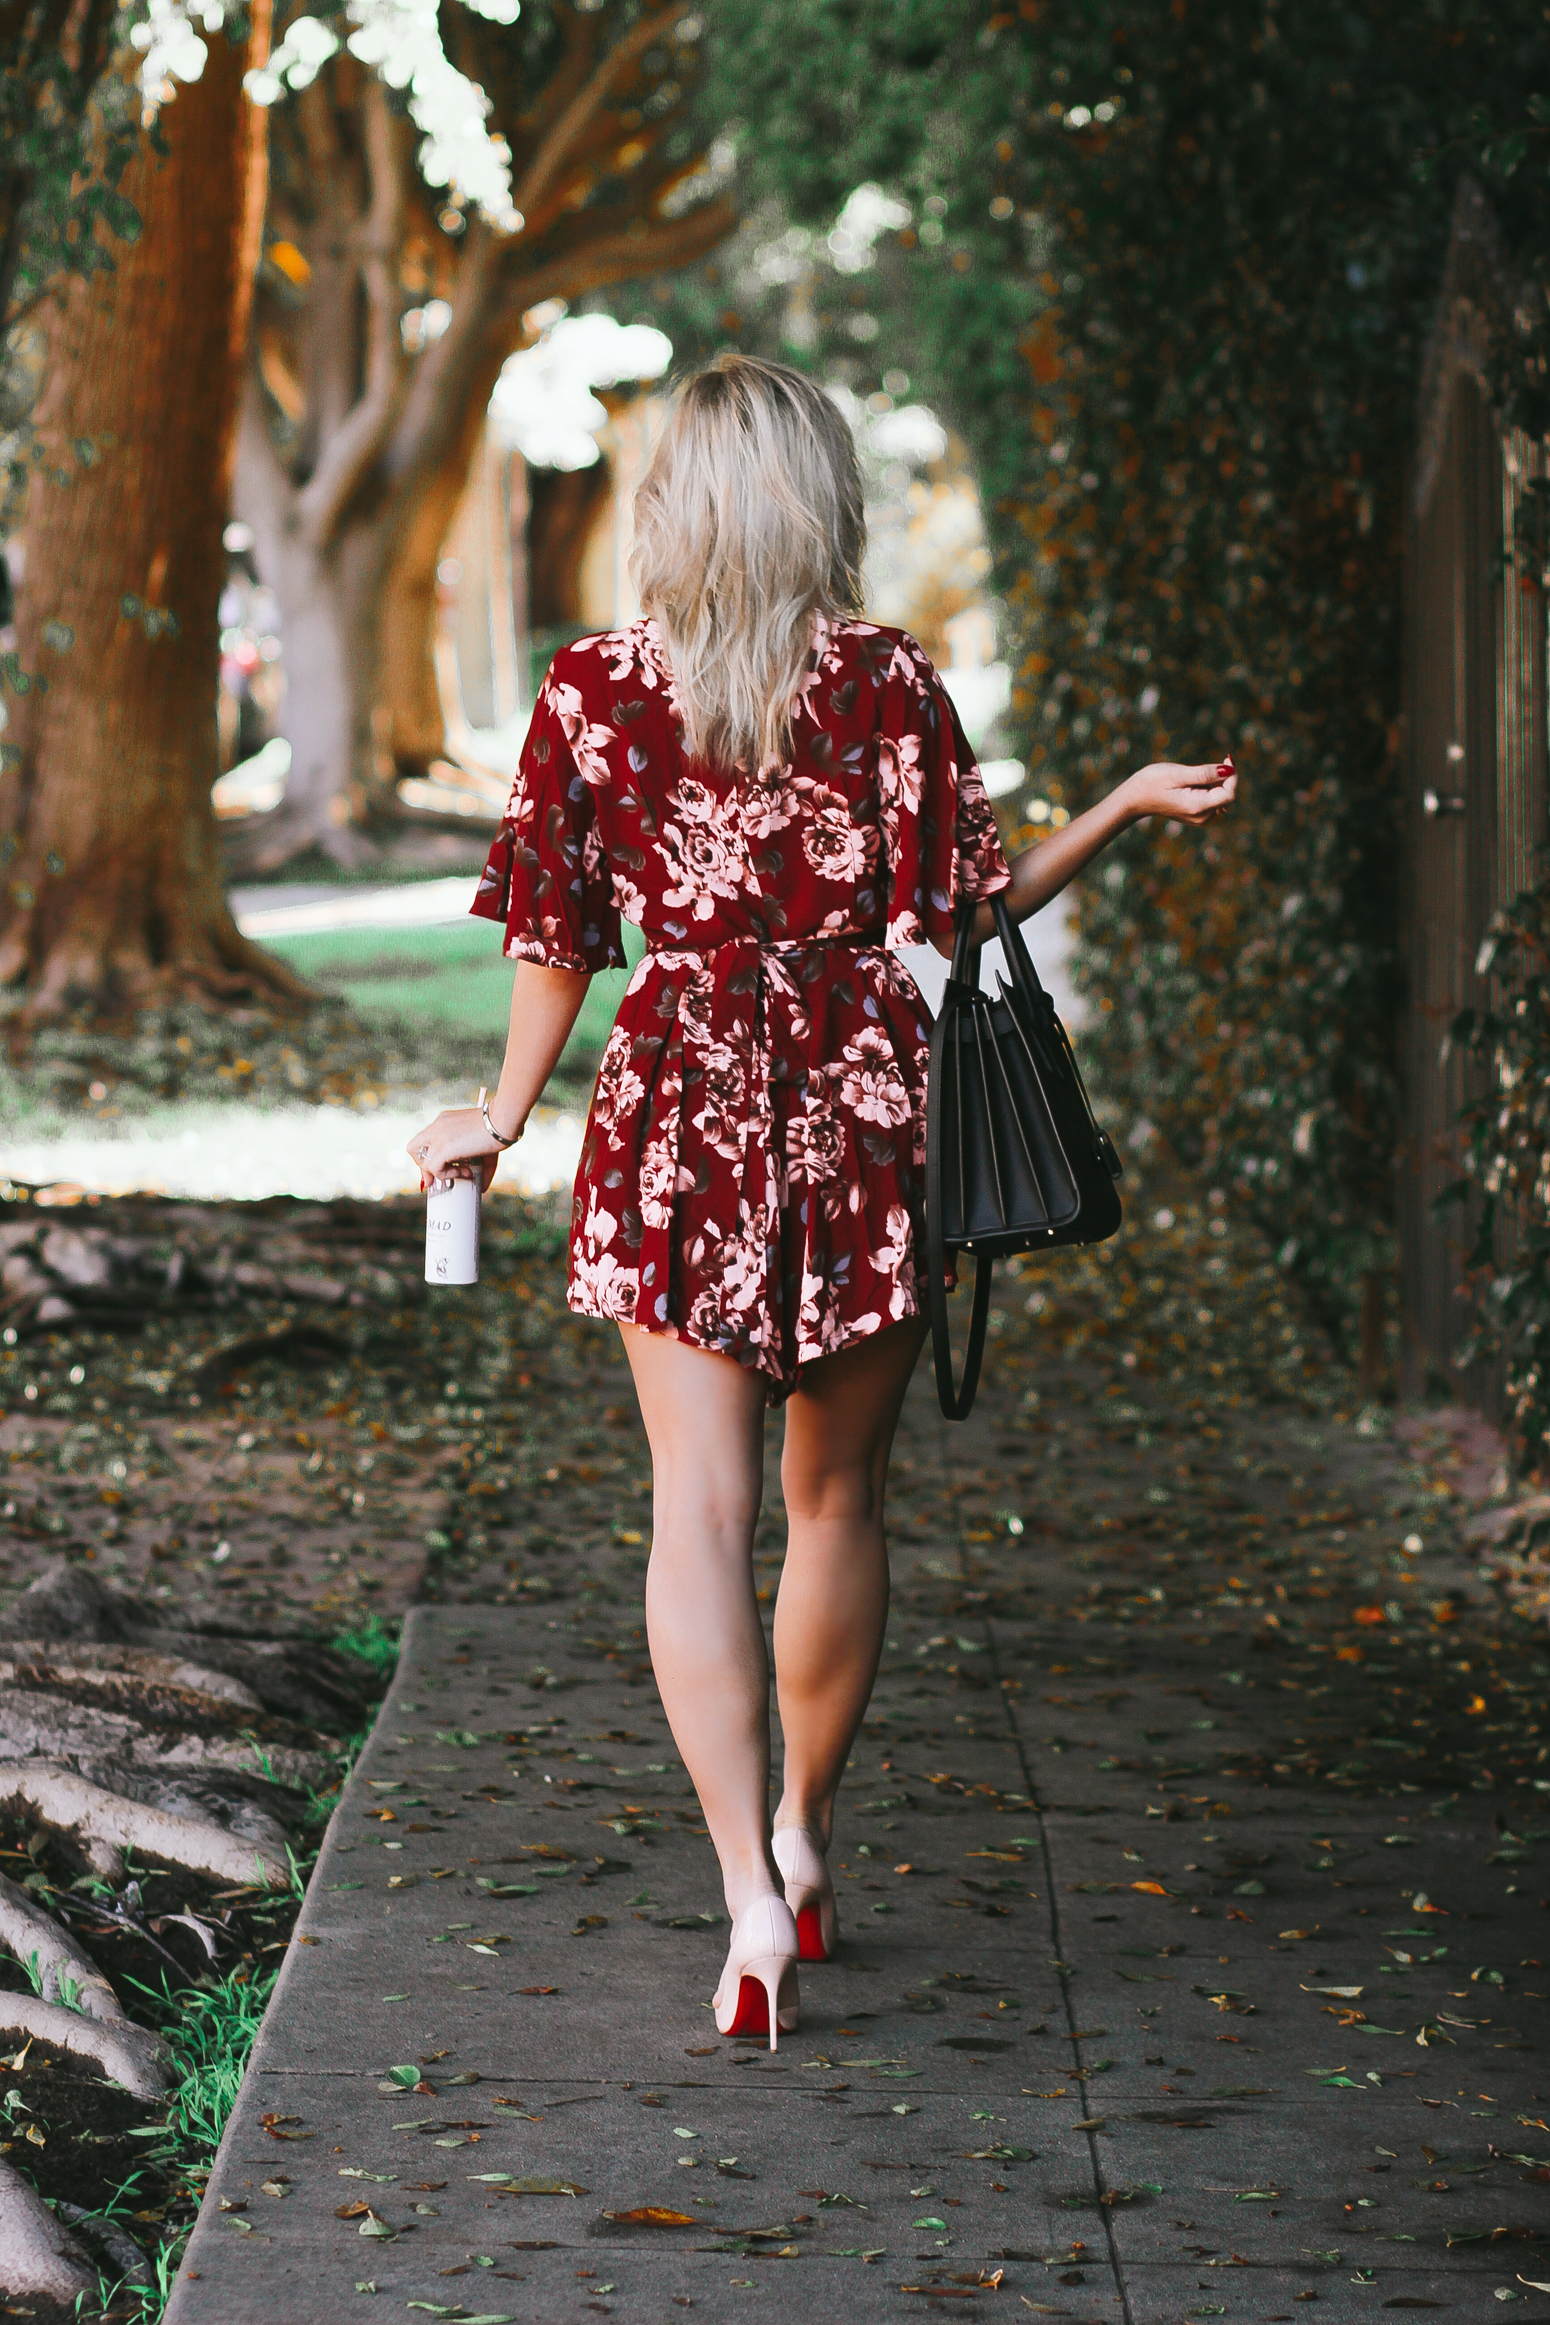 Blondie in the City | Pink Rose Romper | YSL Bag, Saint Laurent Sac De Jour | Pink Louboutin's